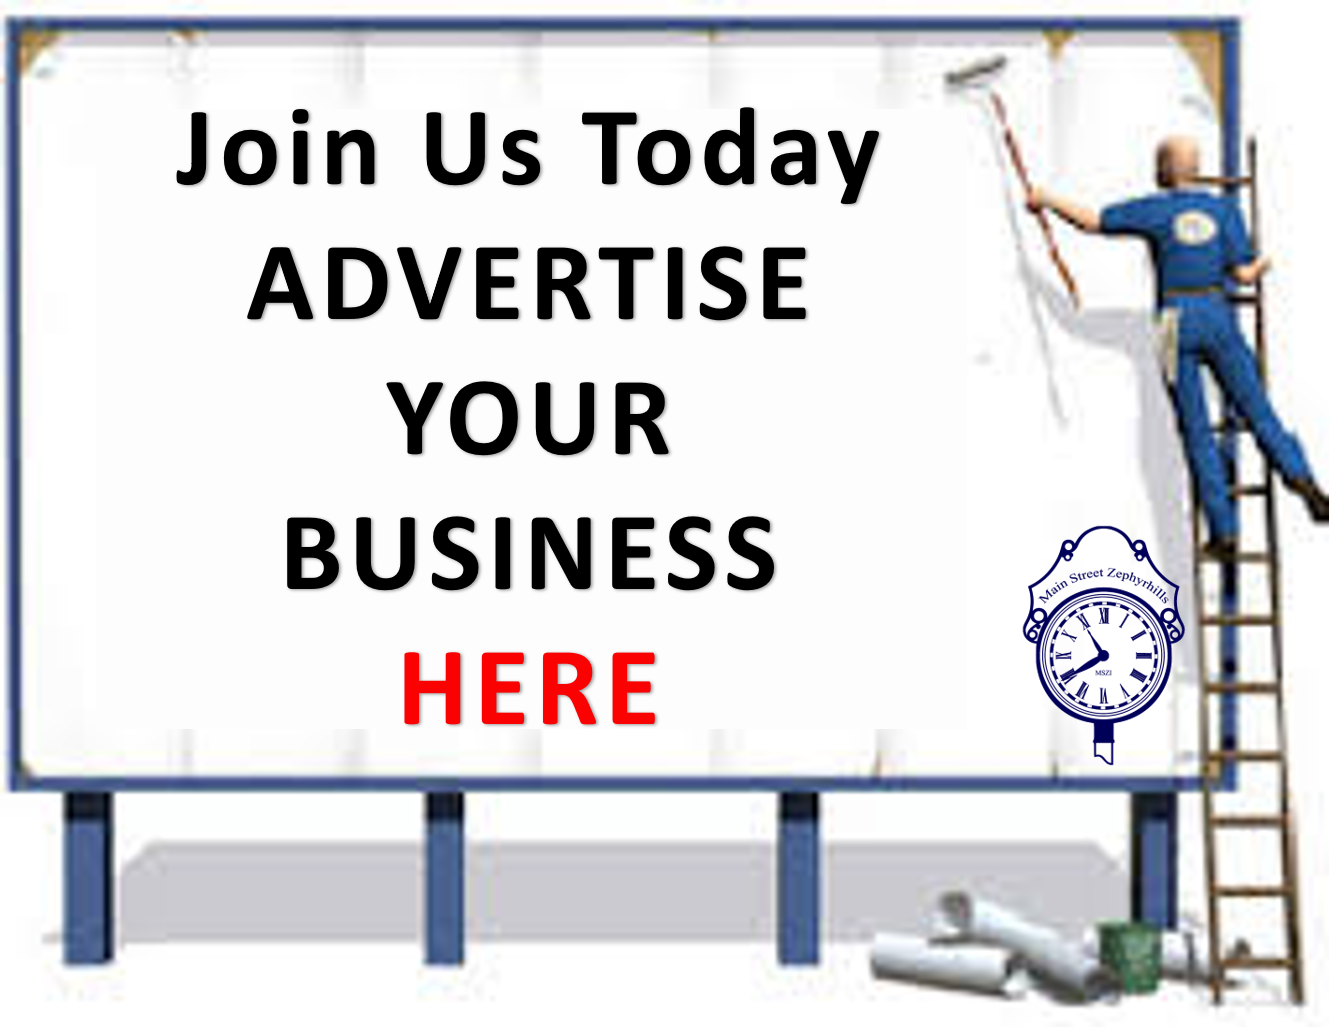 Advertise your business here website 2019.png